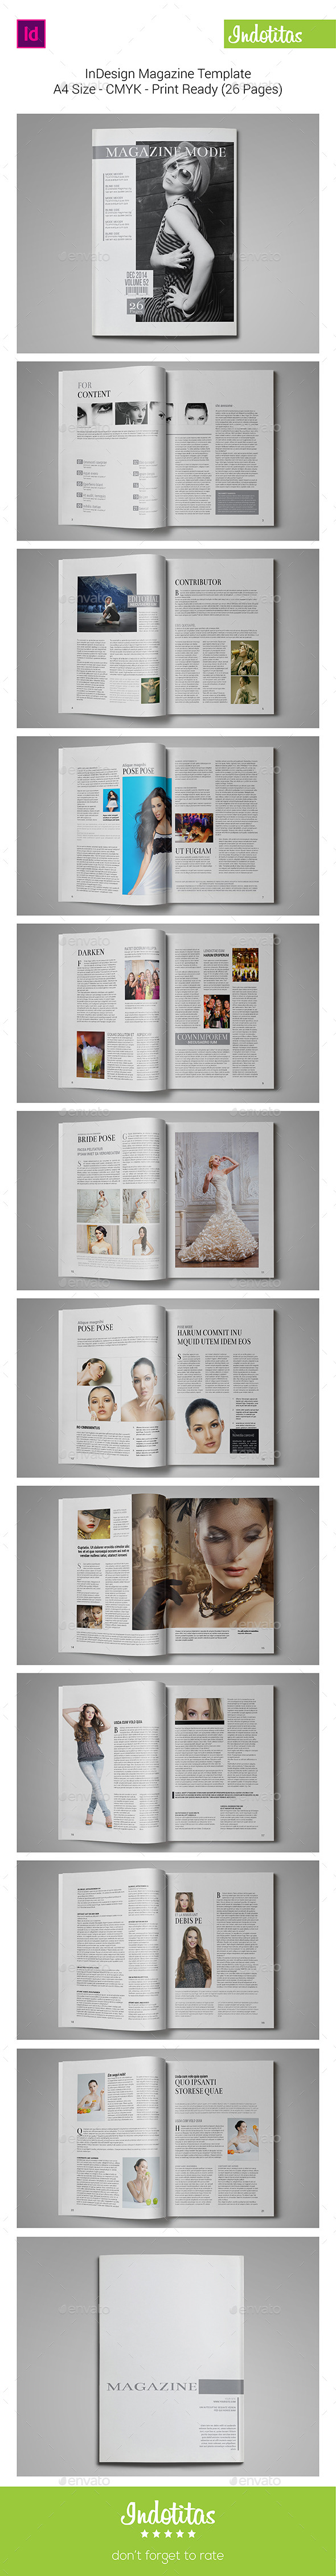 InDesign Magazine Template - Magazines Print Templates